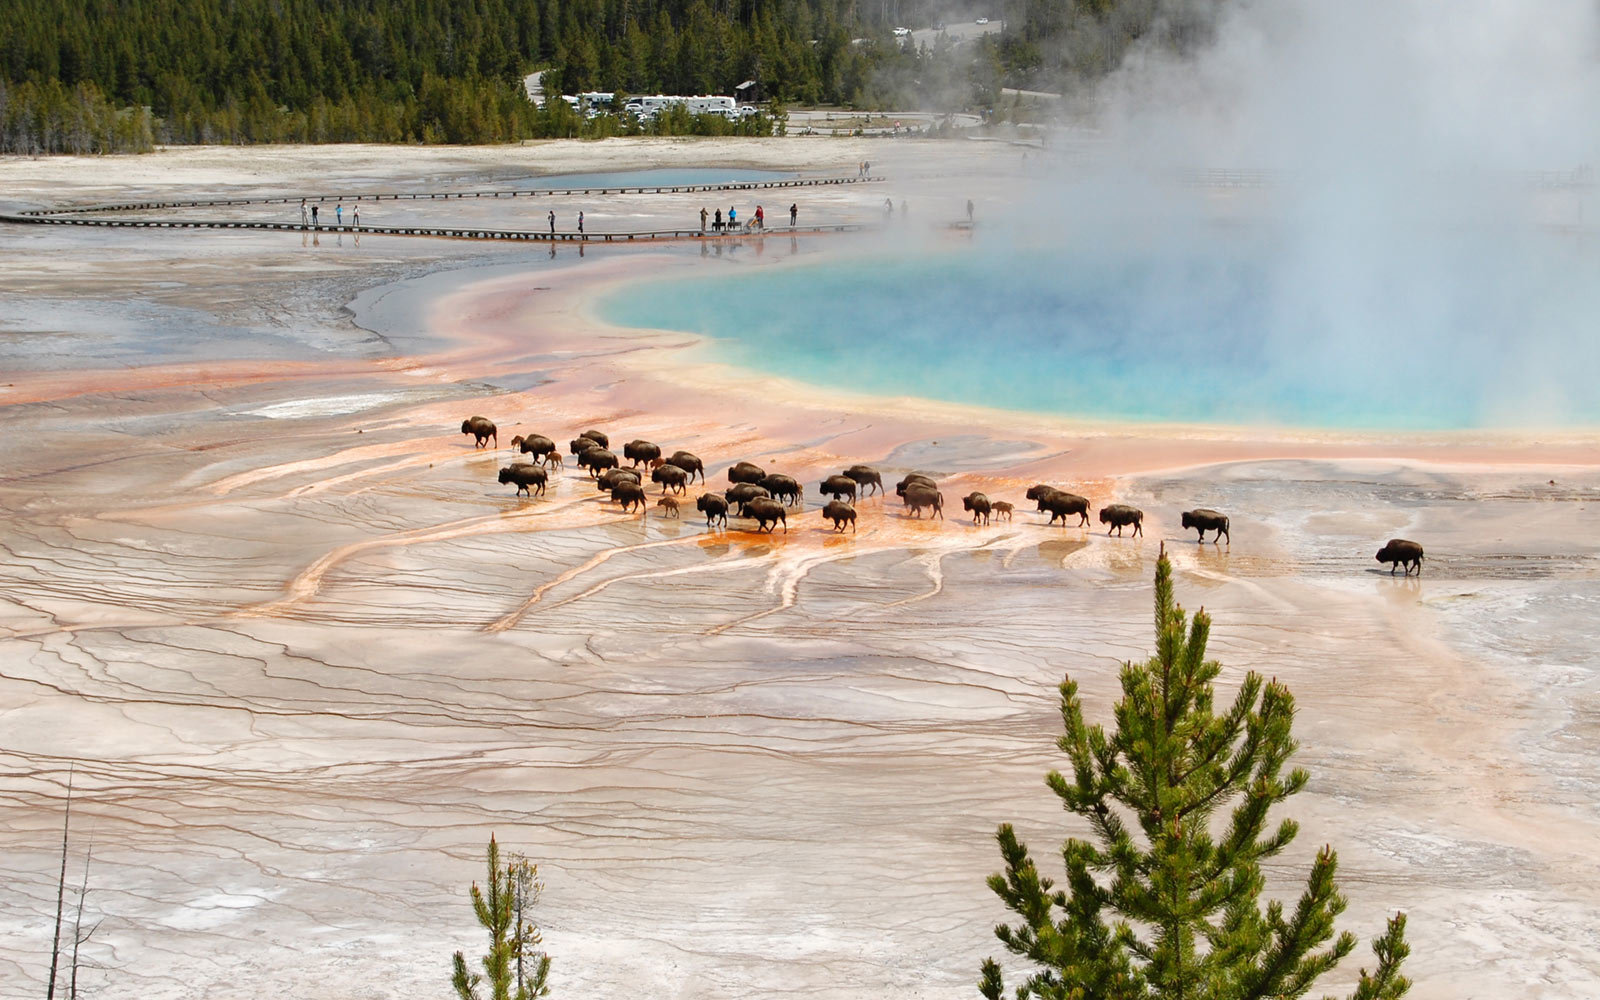 Bison, Midway Geyser Basin, Yellowstone National Park, Wyoming